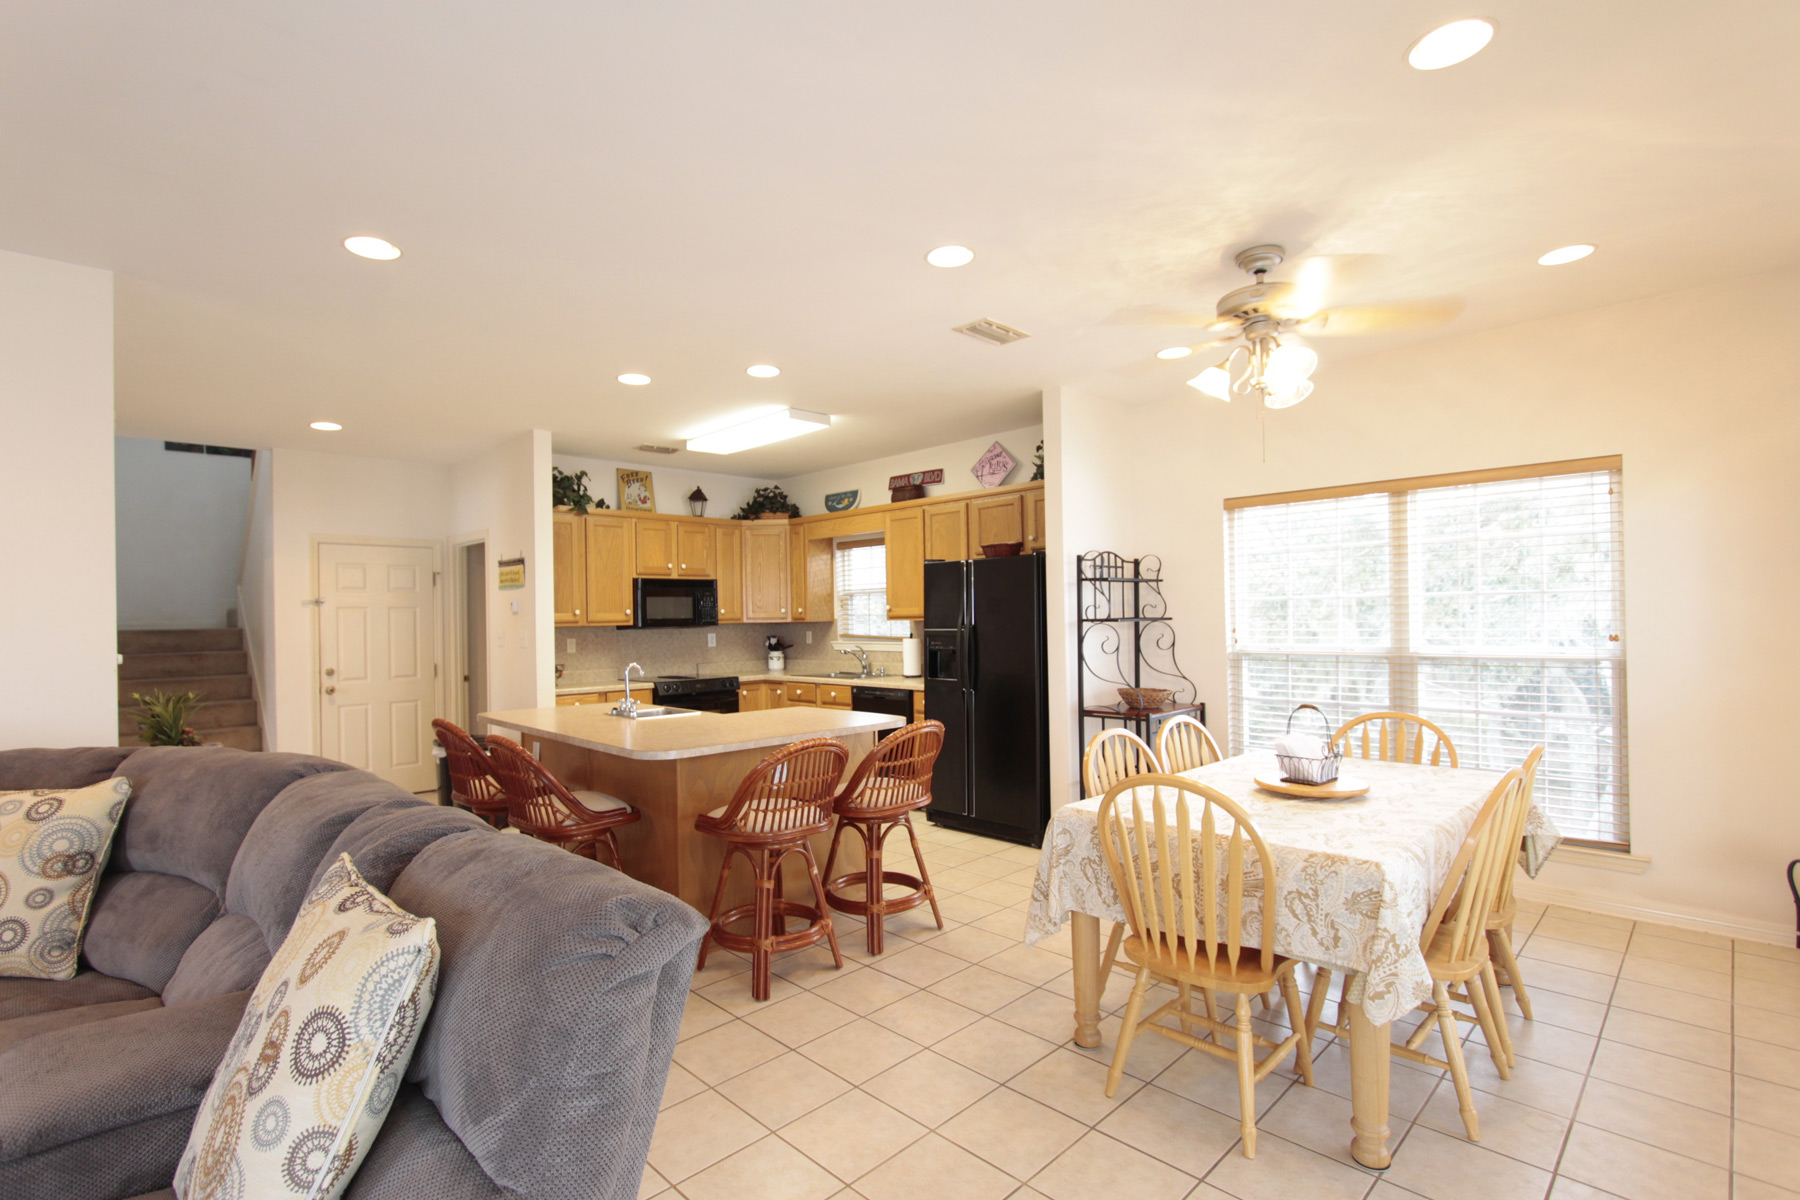 Open dining and kitchen area